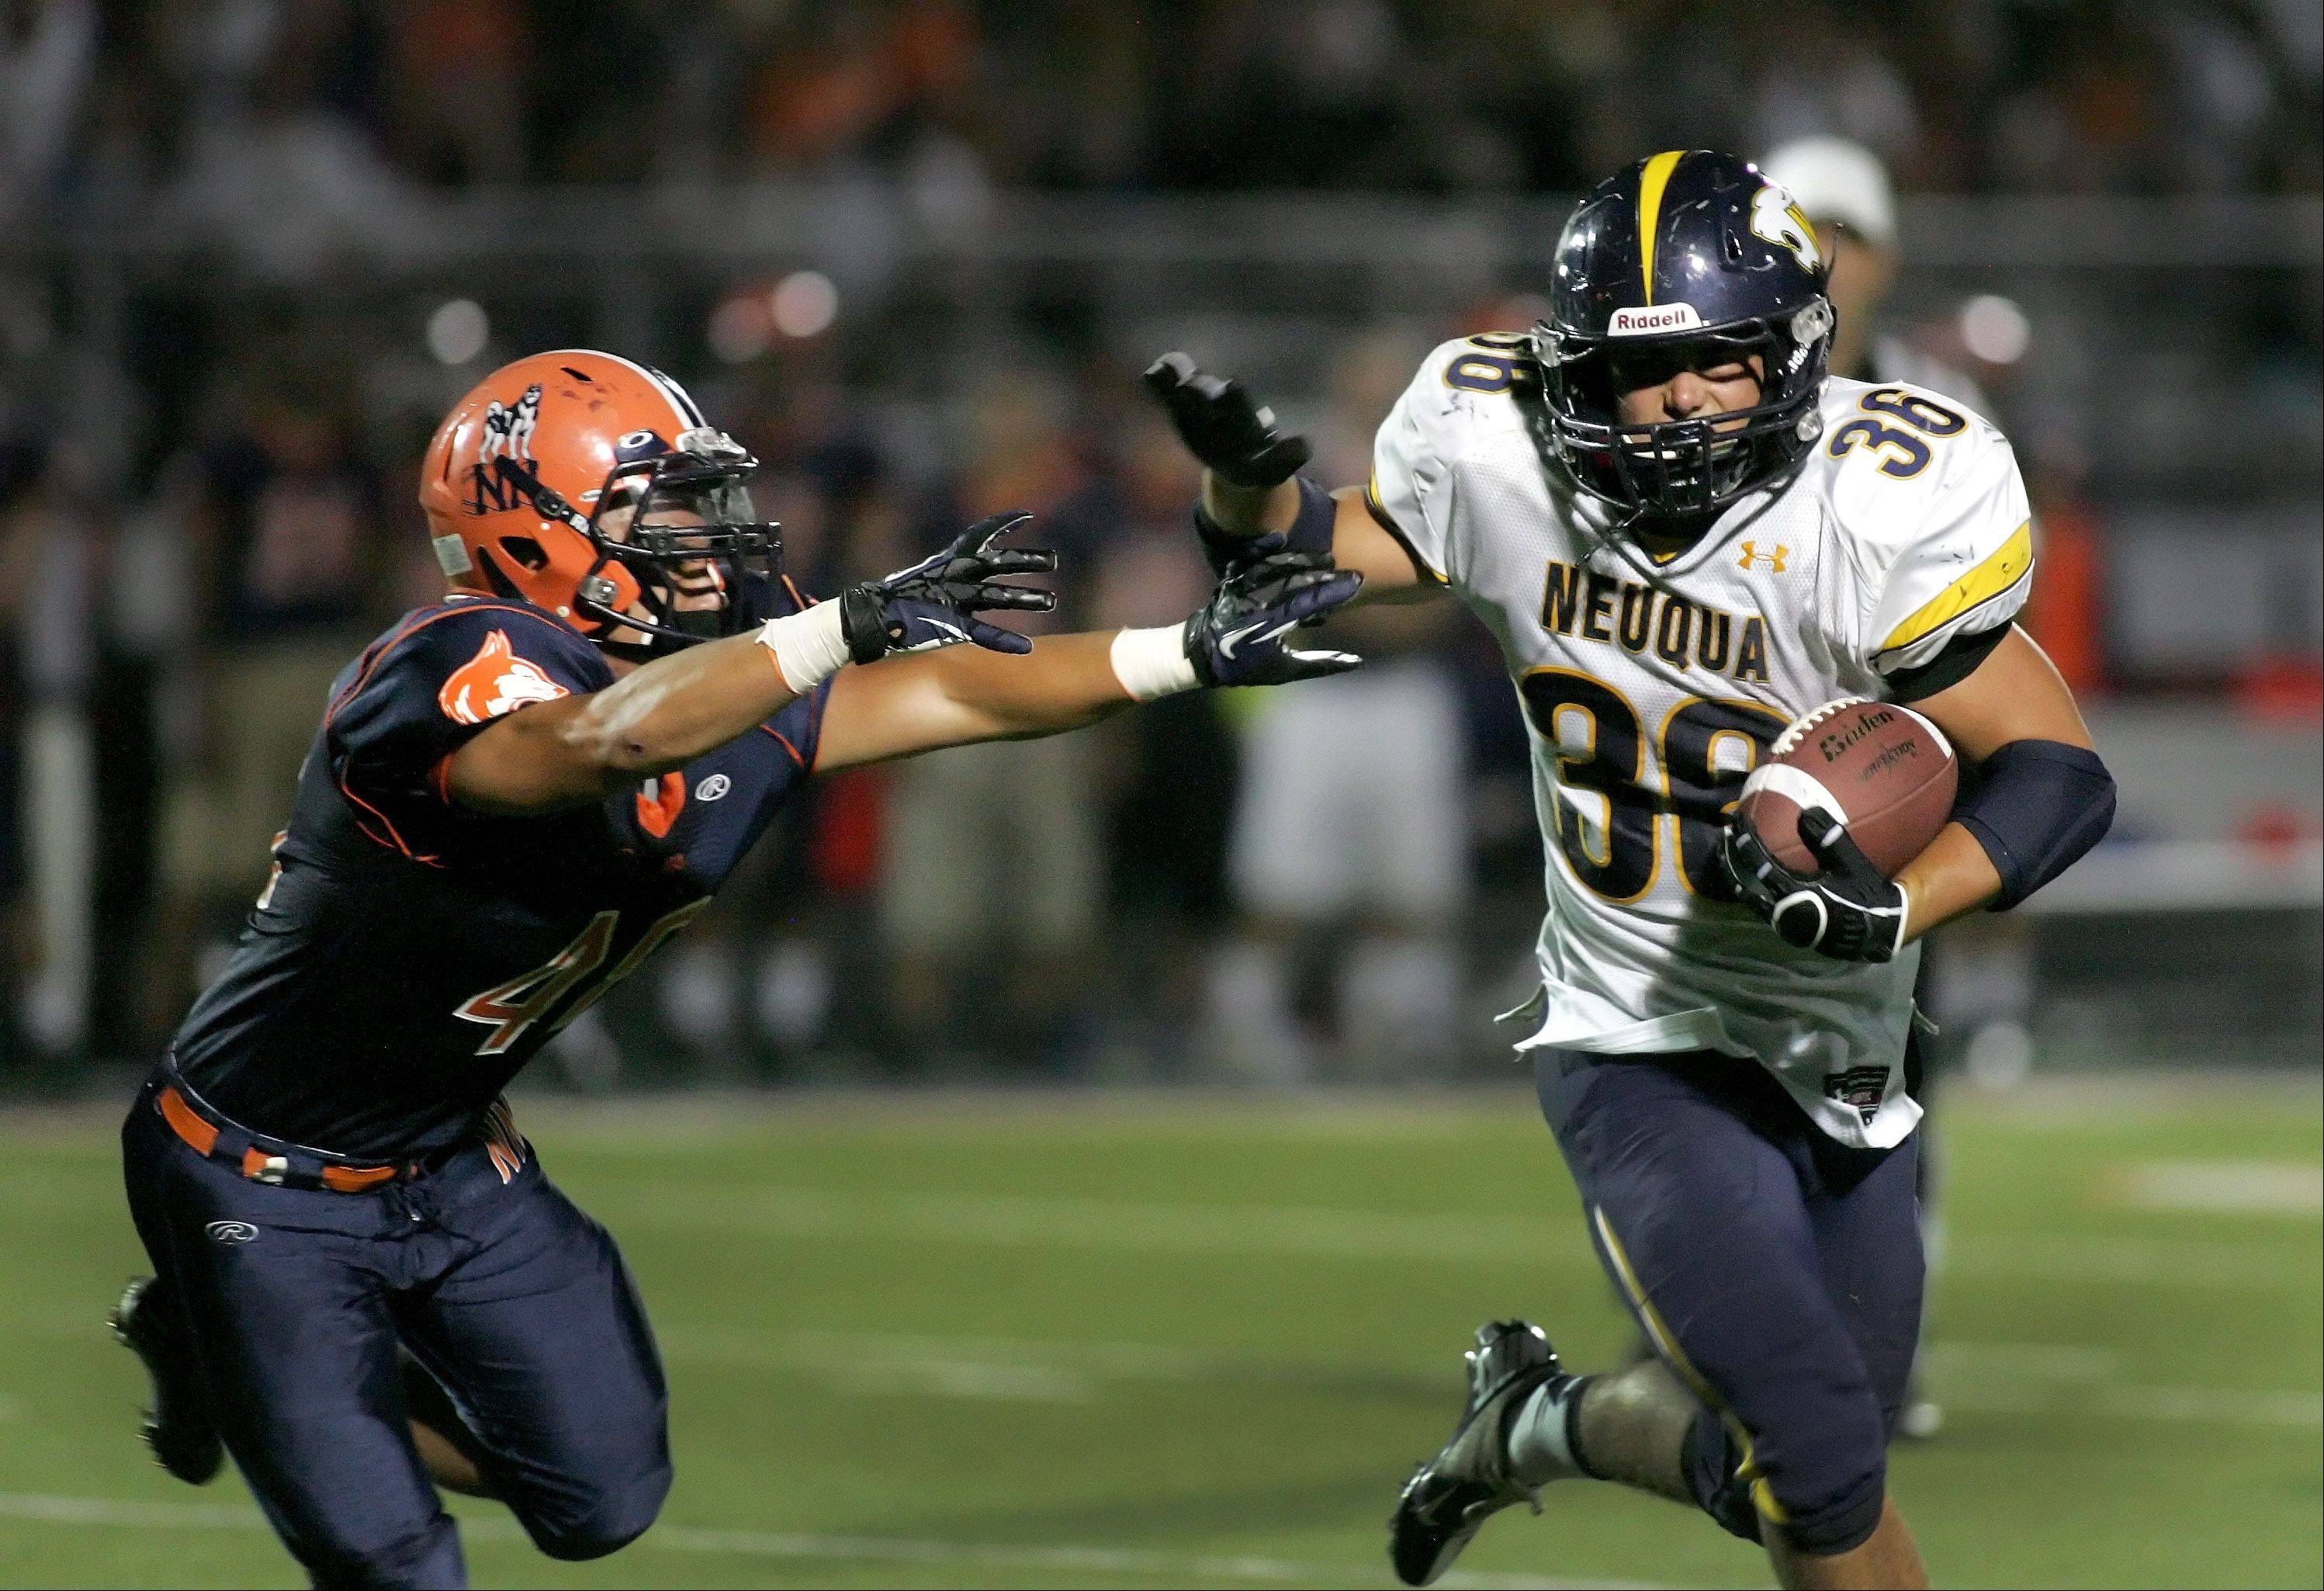 Images: Neuqua Valley vs. Naperville North football